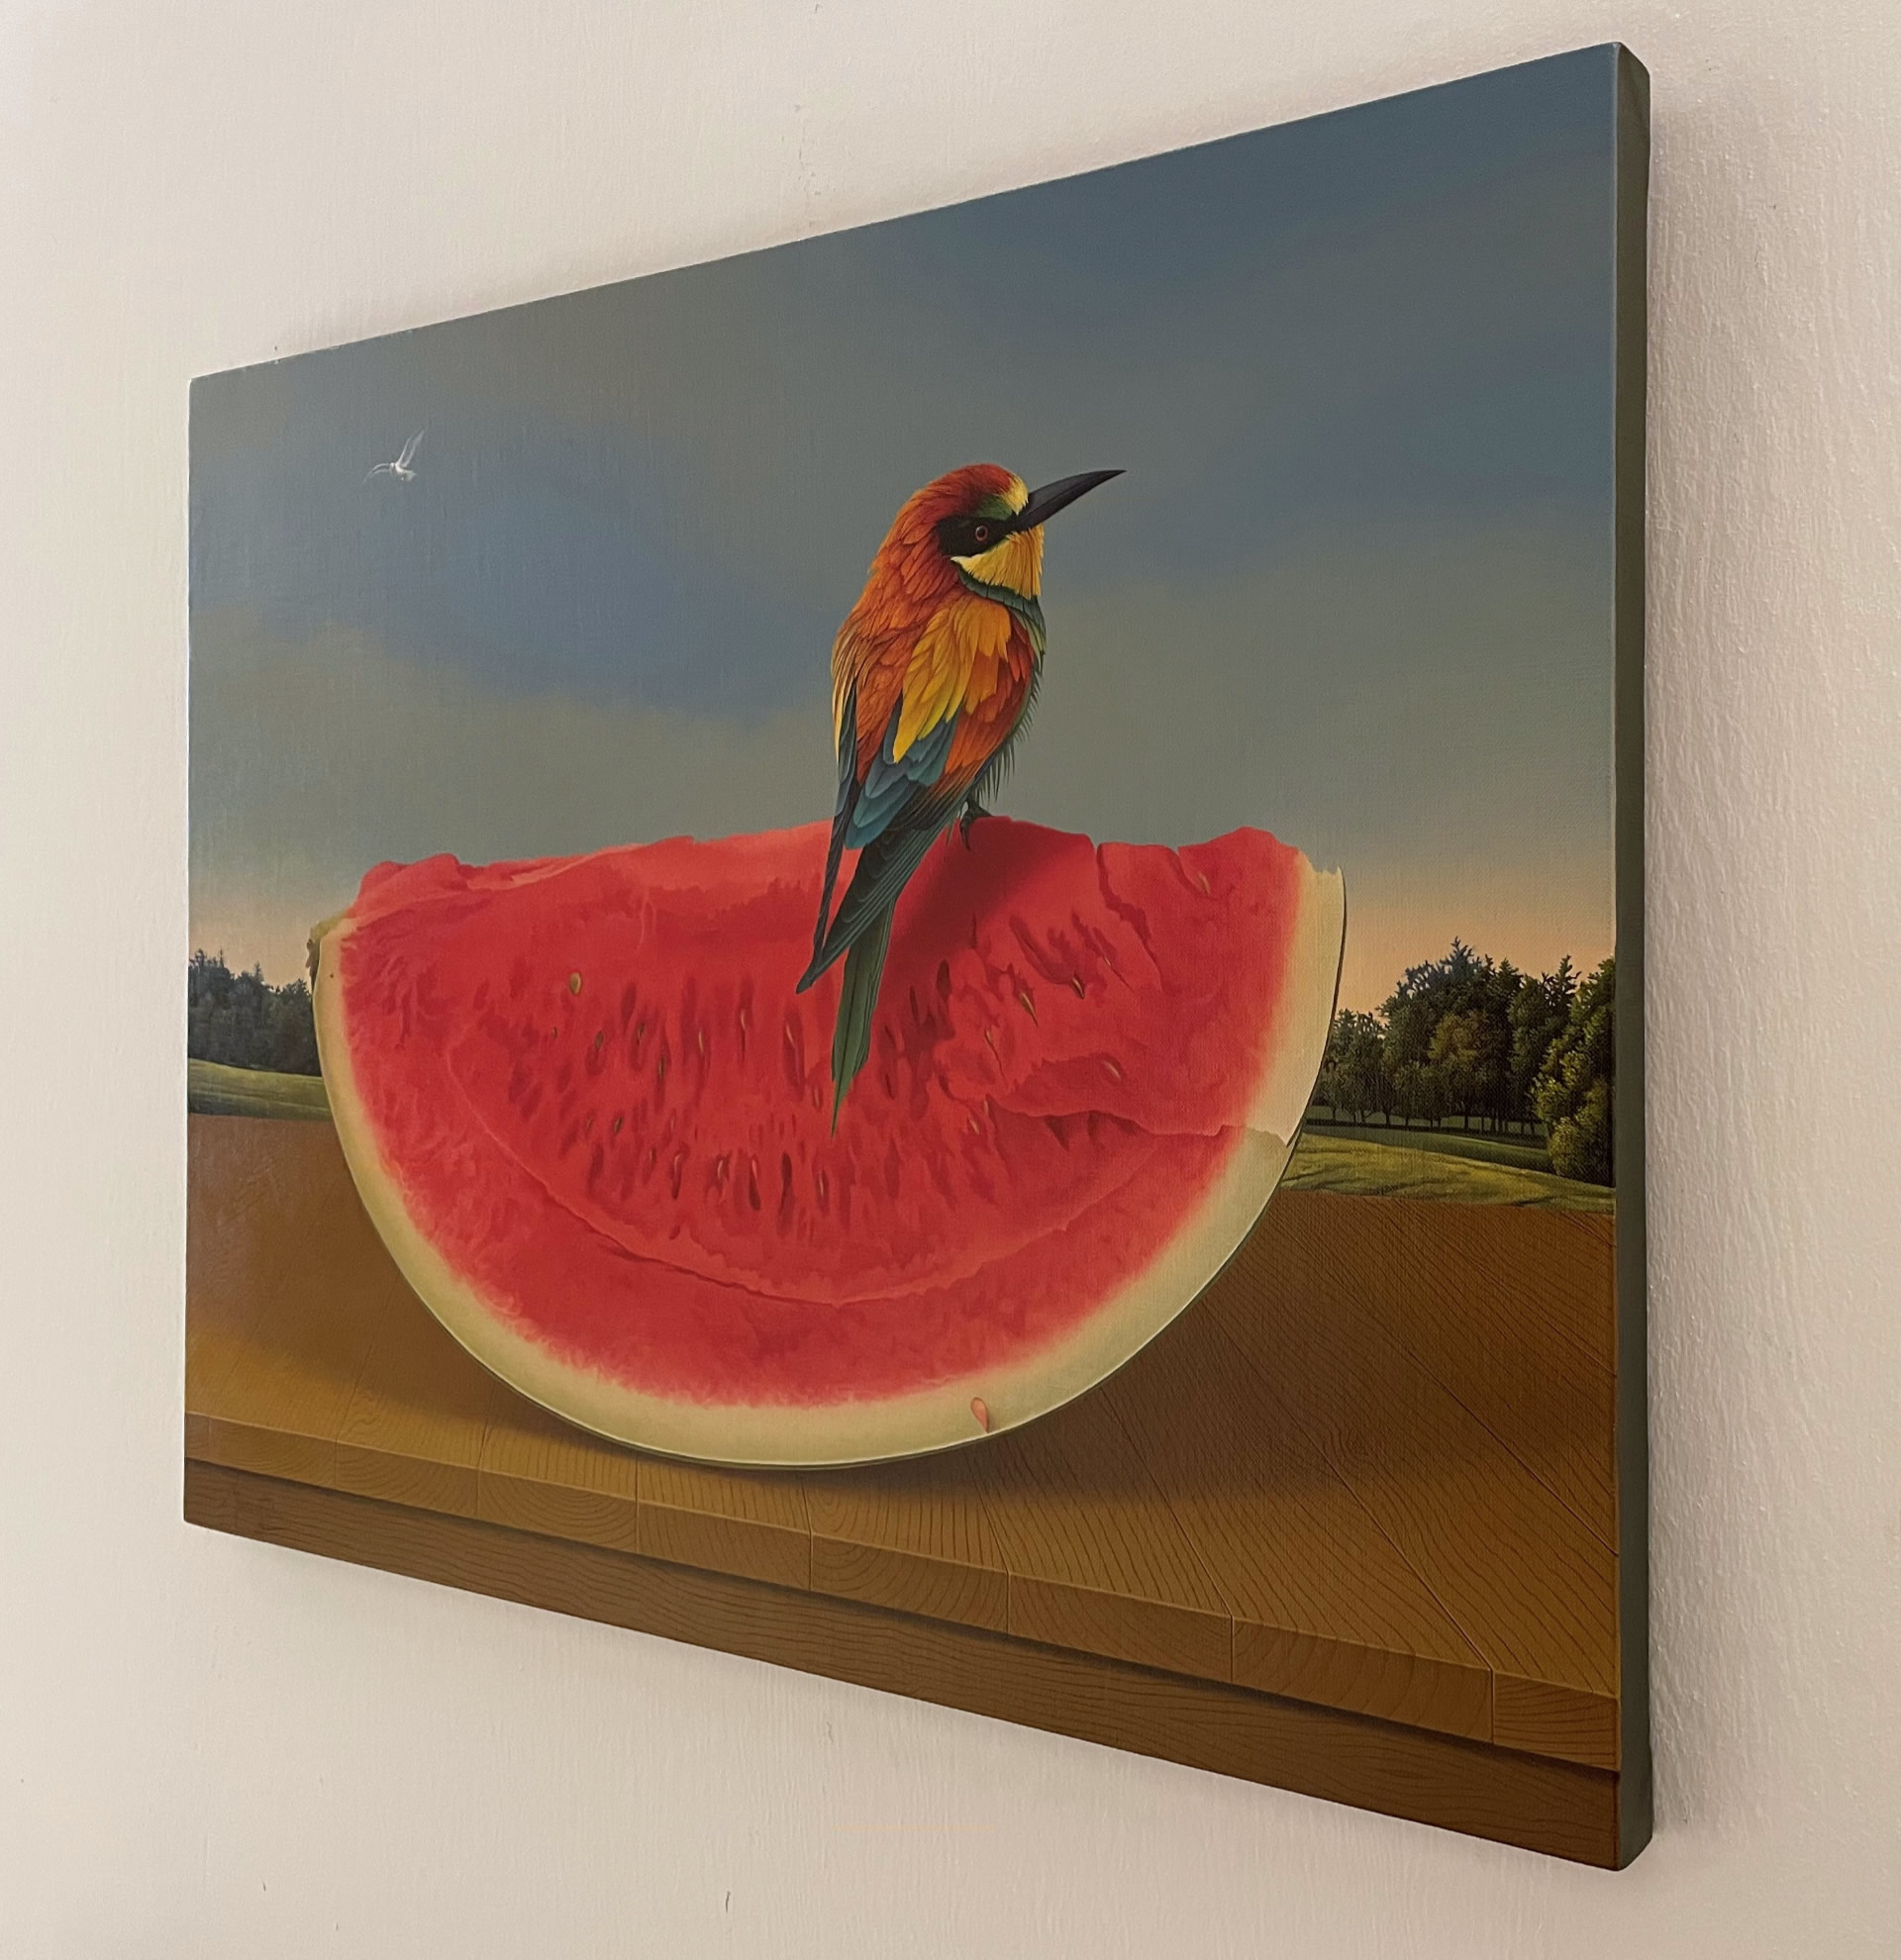 Marco-Tulio-The-Bee-Eater-18x24-oil-on-canvas-6000-painting-Side-Online-Art-Galleries